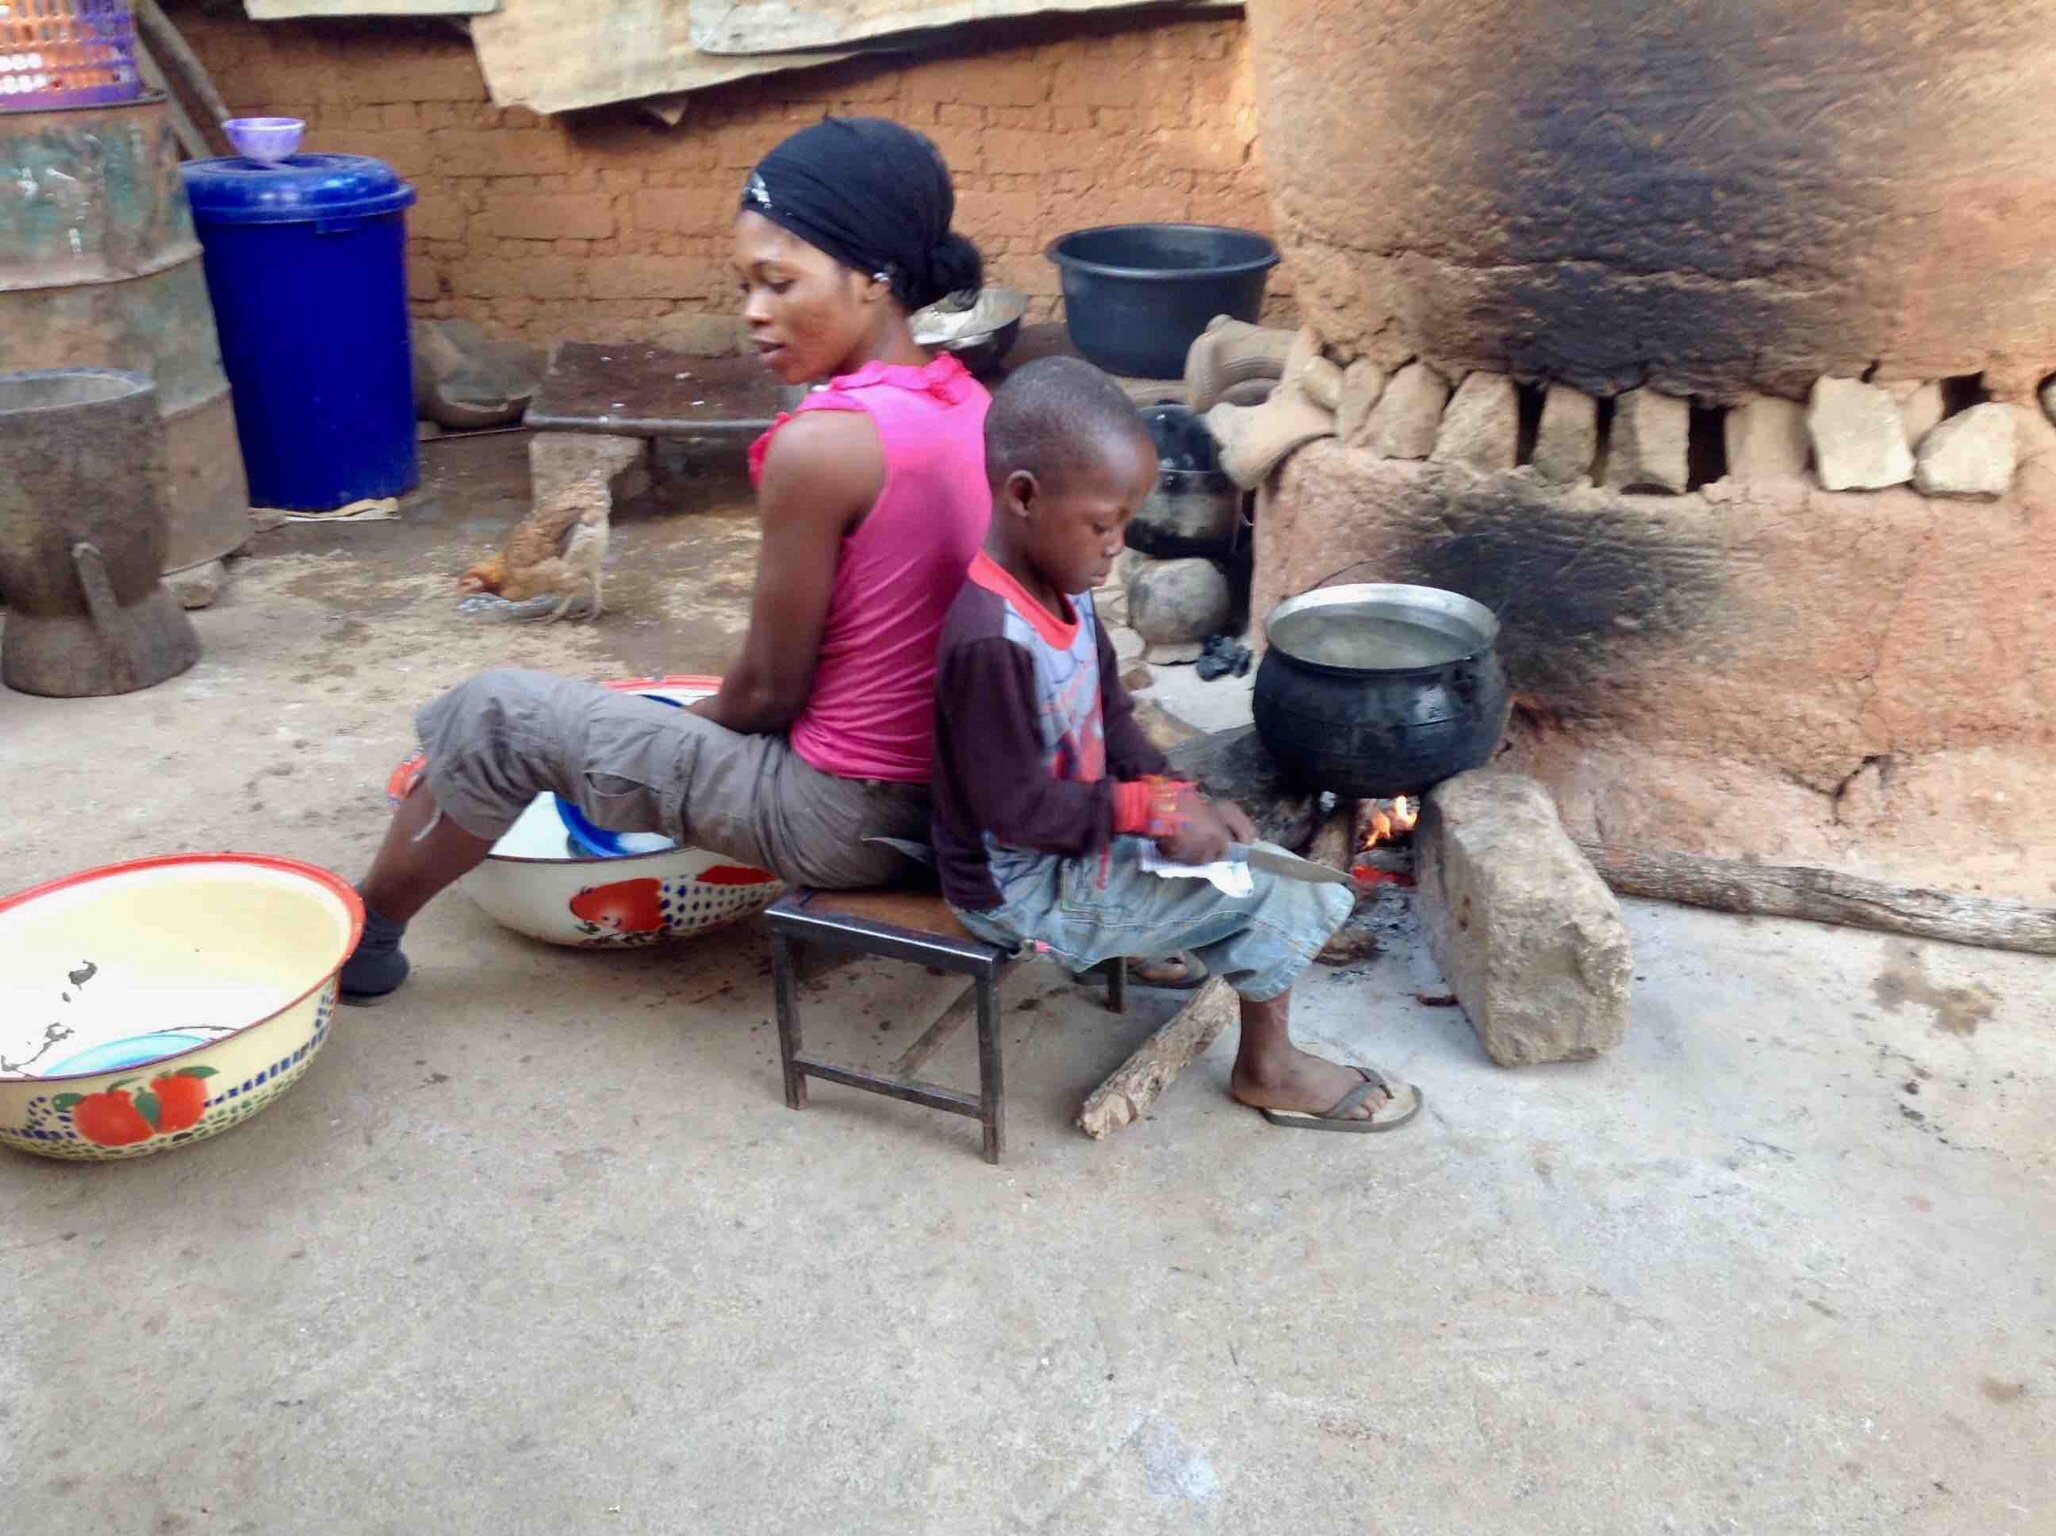 Lendere, (Wamba) mother and son in Langa Langa Village, Nasarawa State, Nigeria. #JujuFilms